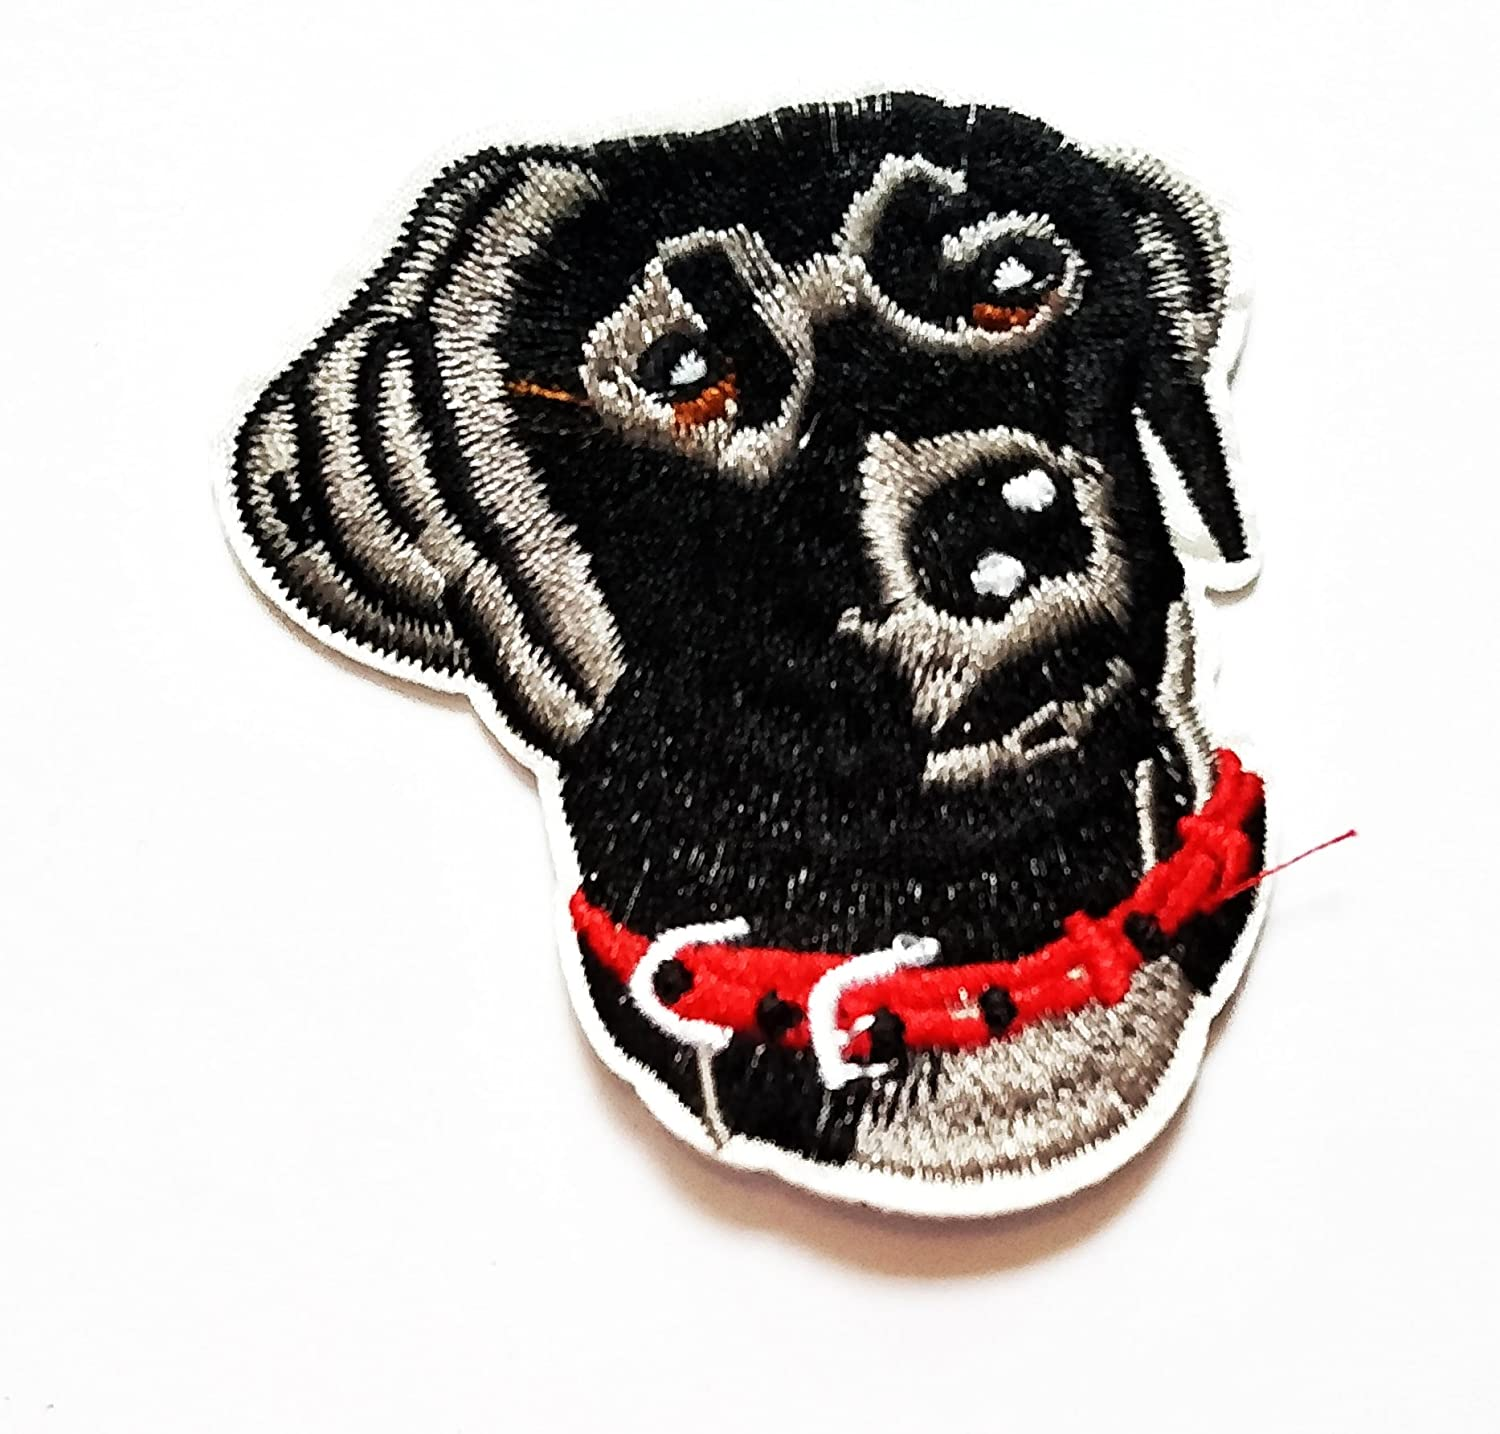 Nipitshop Patches Black Lab Labrador Cute Dog Red Collar Cartoon Kids Patch Embroidered Iron On Patch for Clothes Backpacks T-Shirt Jeans Skirt Vests Scarf Hat Bag